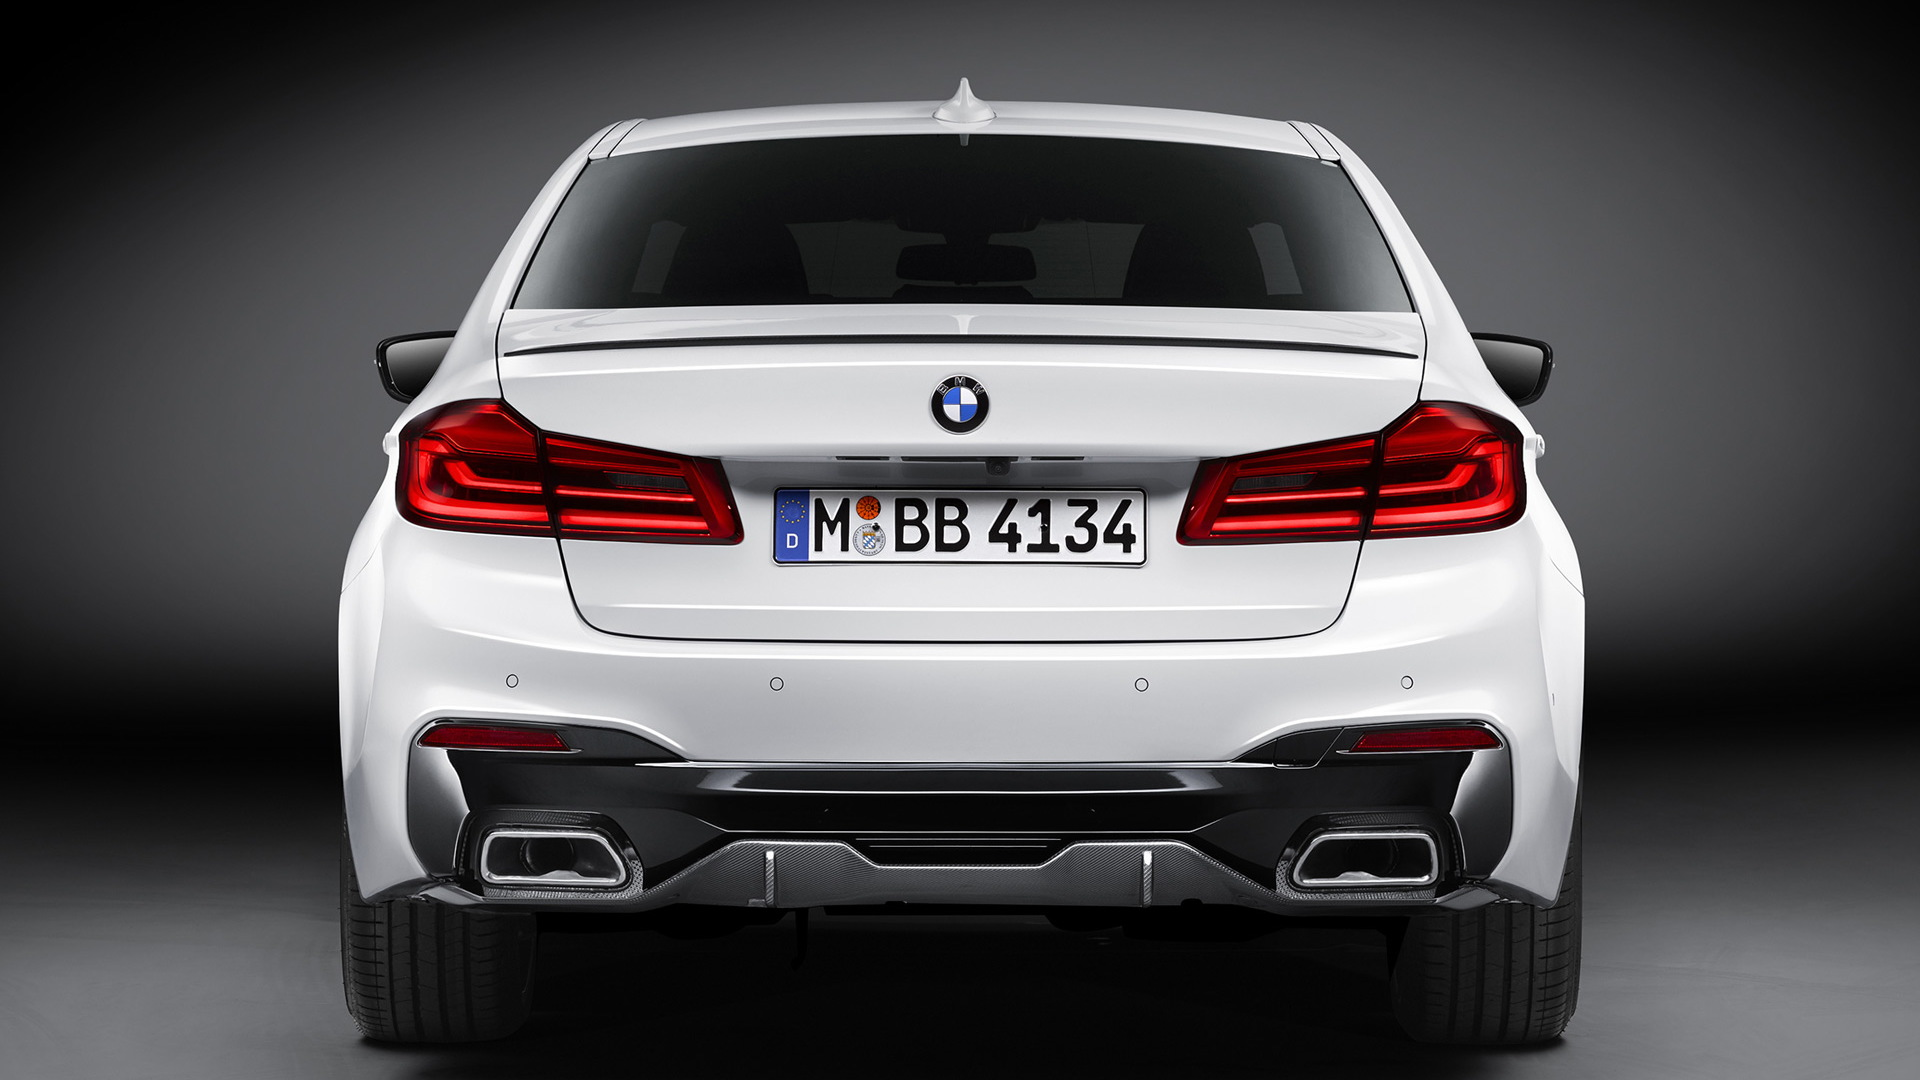 2017 BMW 5-Series equipped with M Performance parts